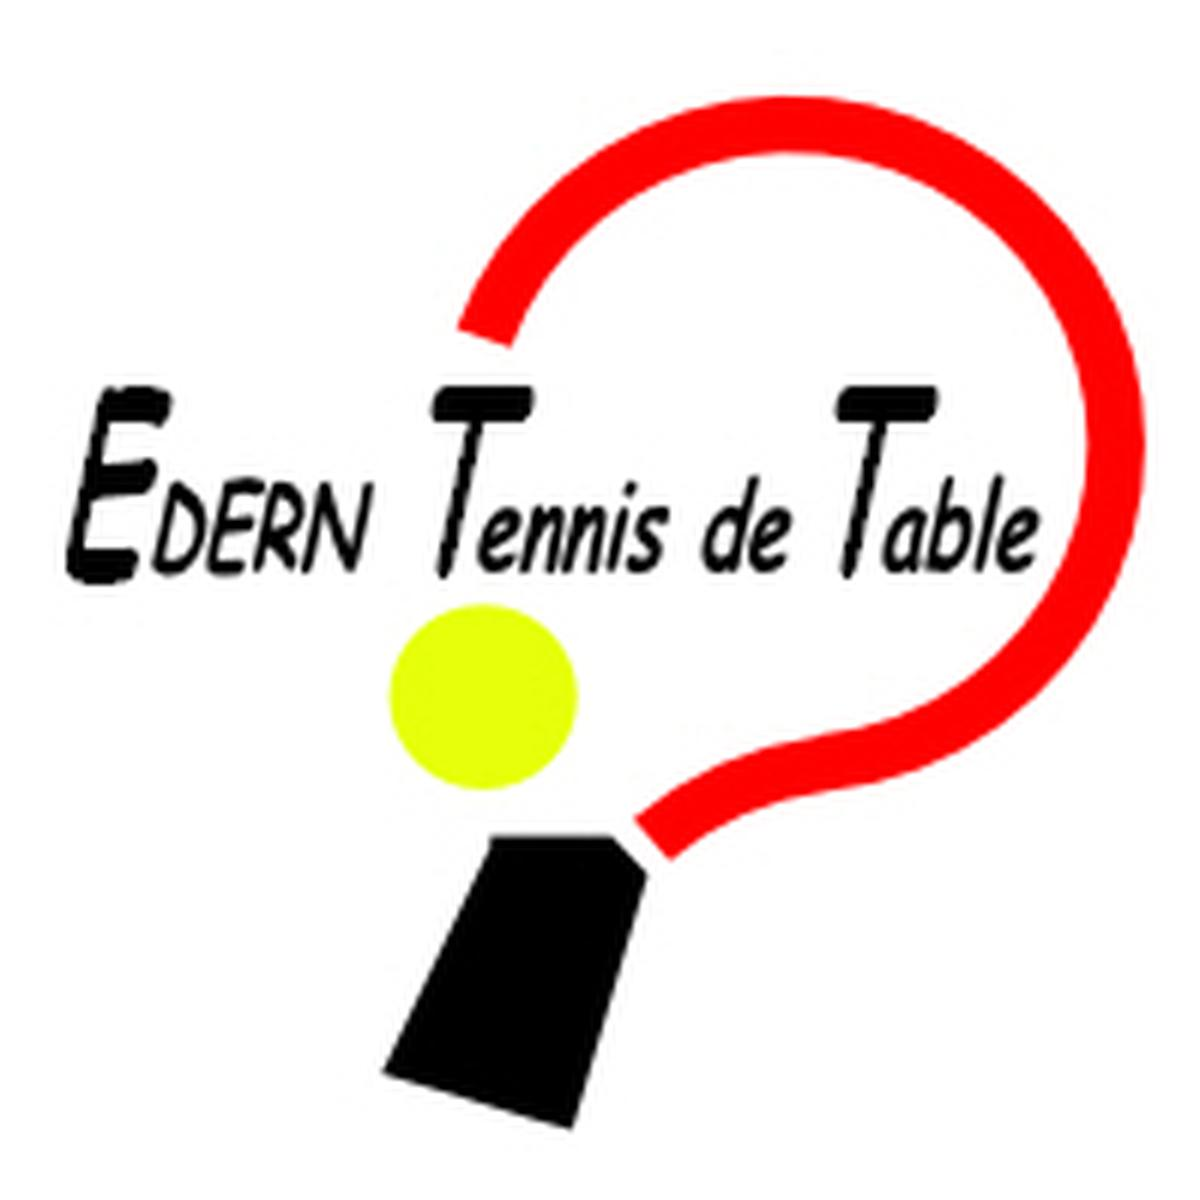 EDERN Tennis de Table